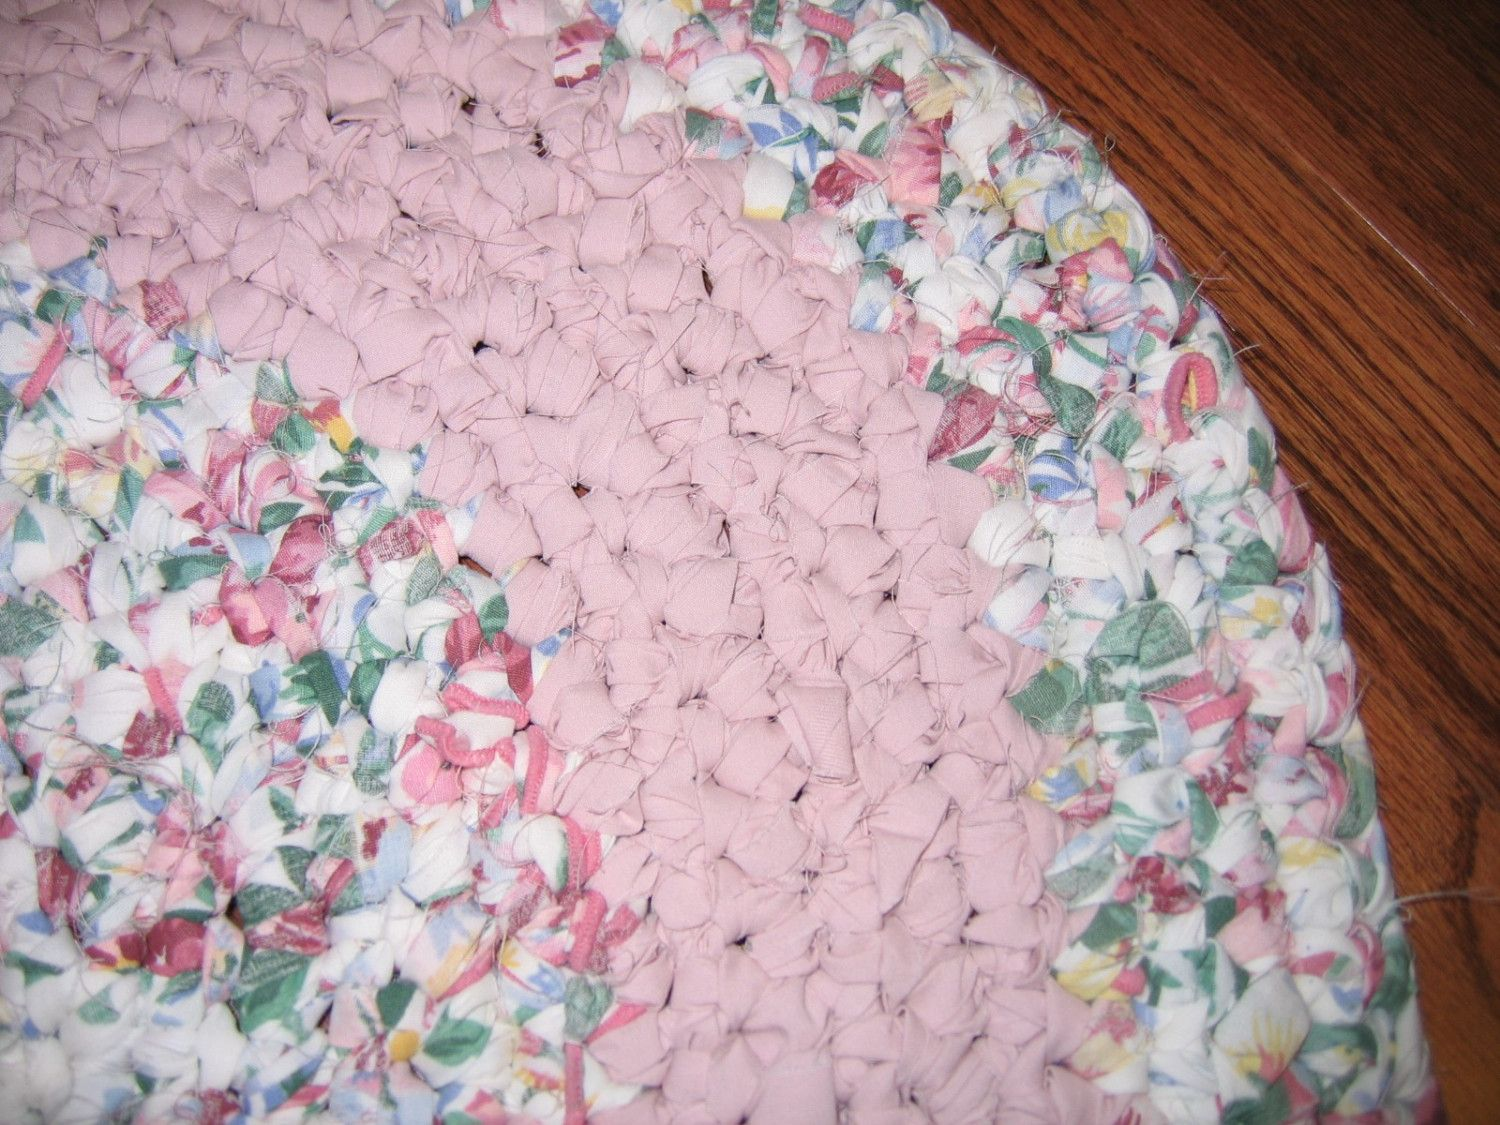 Image Detail For Crocheted Oval Rag Rug By Raggedyanns Braided Rag Rugs Crochet Rag Rug Rag Rug Diy